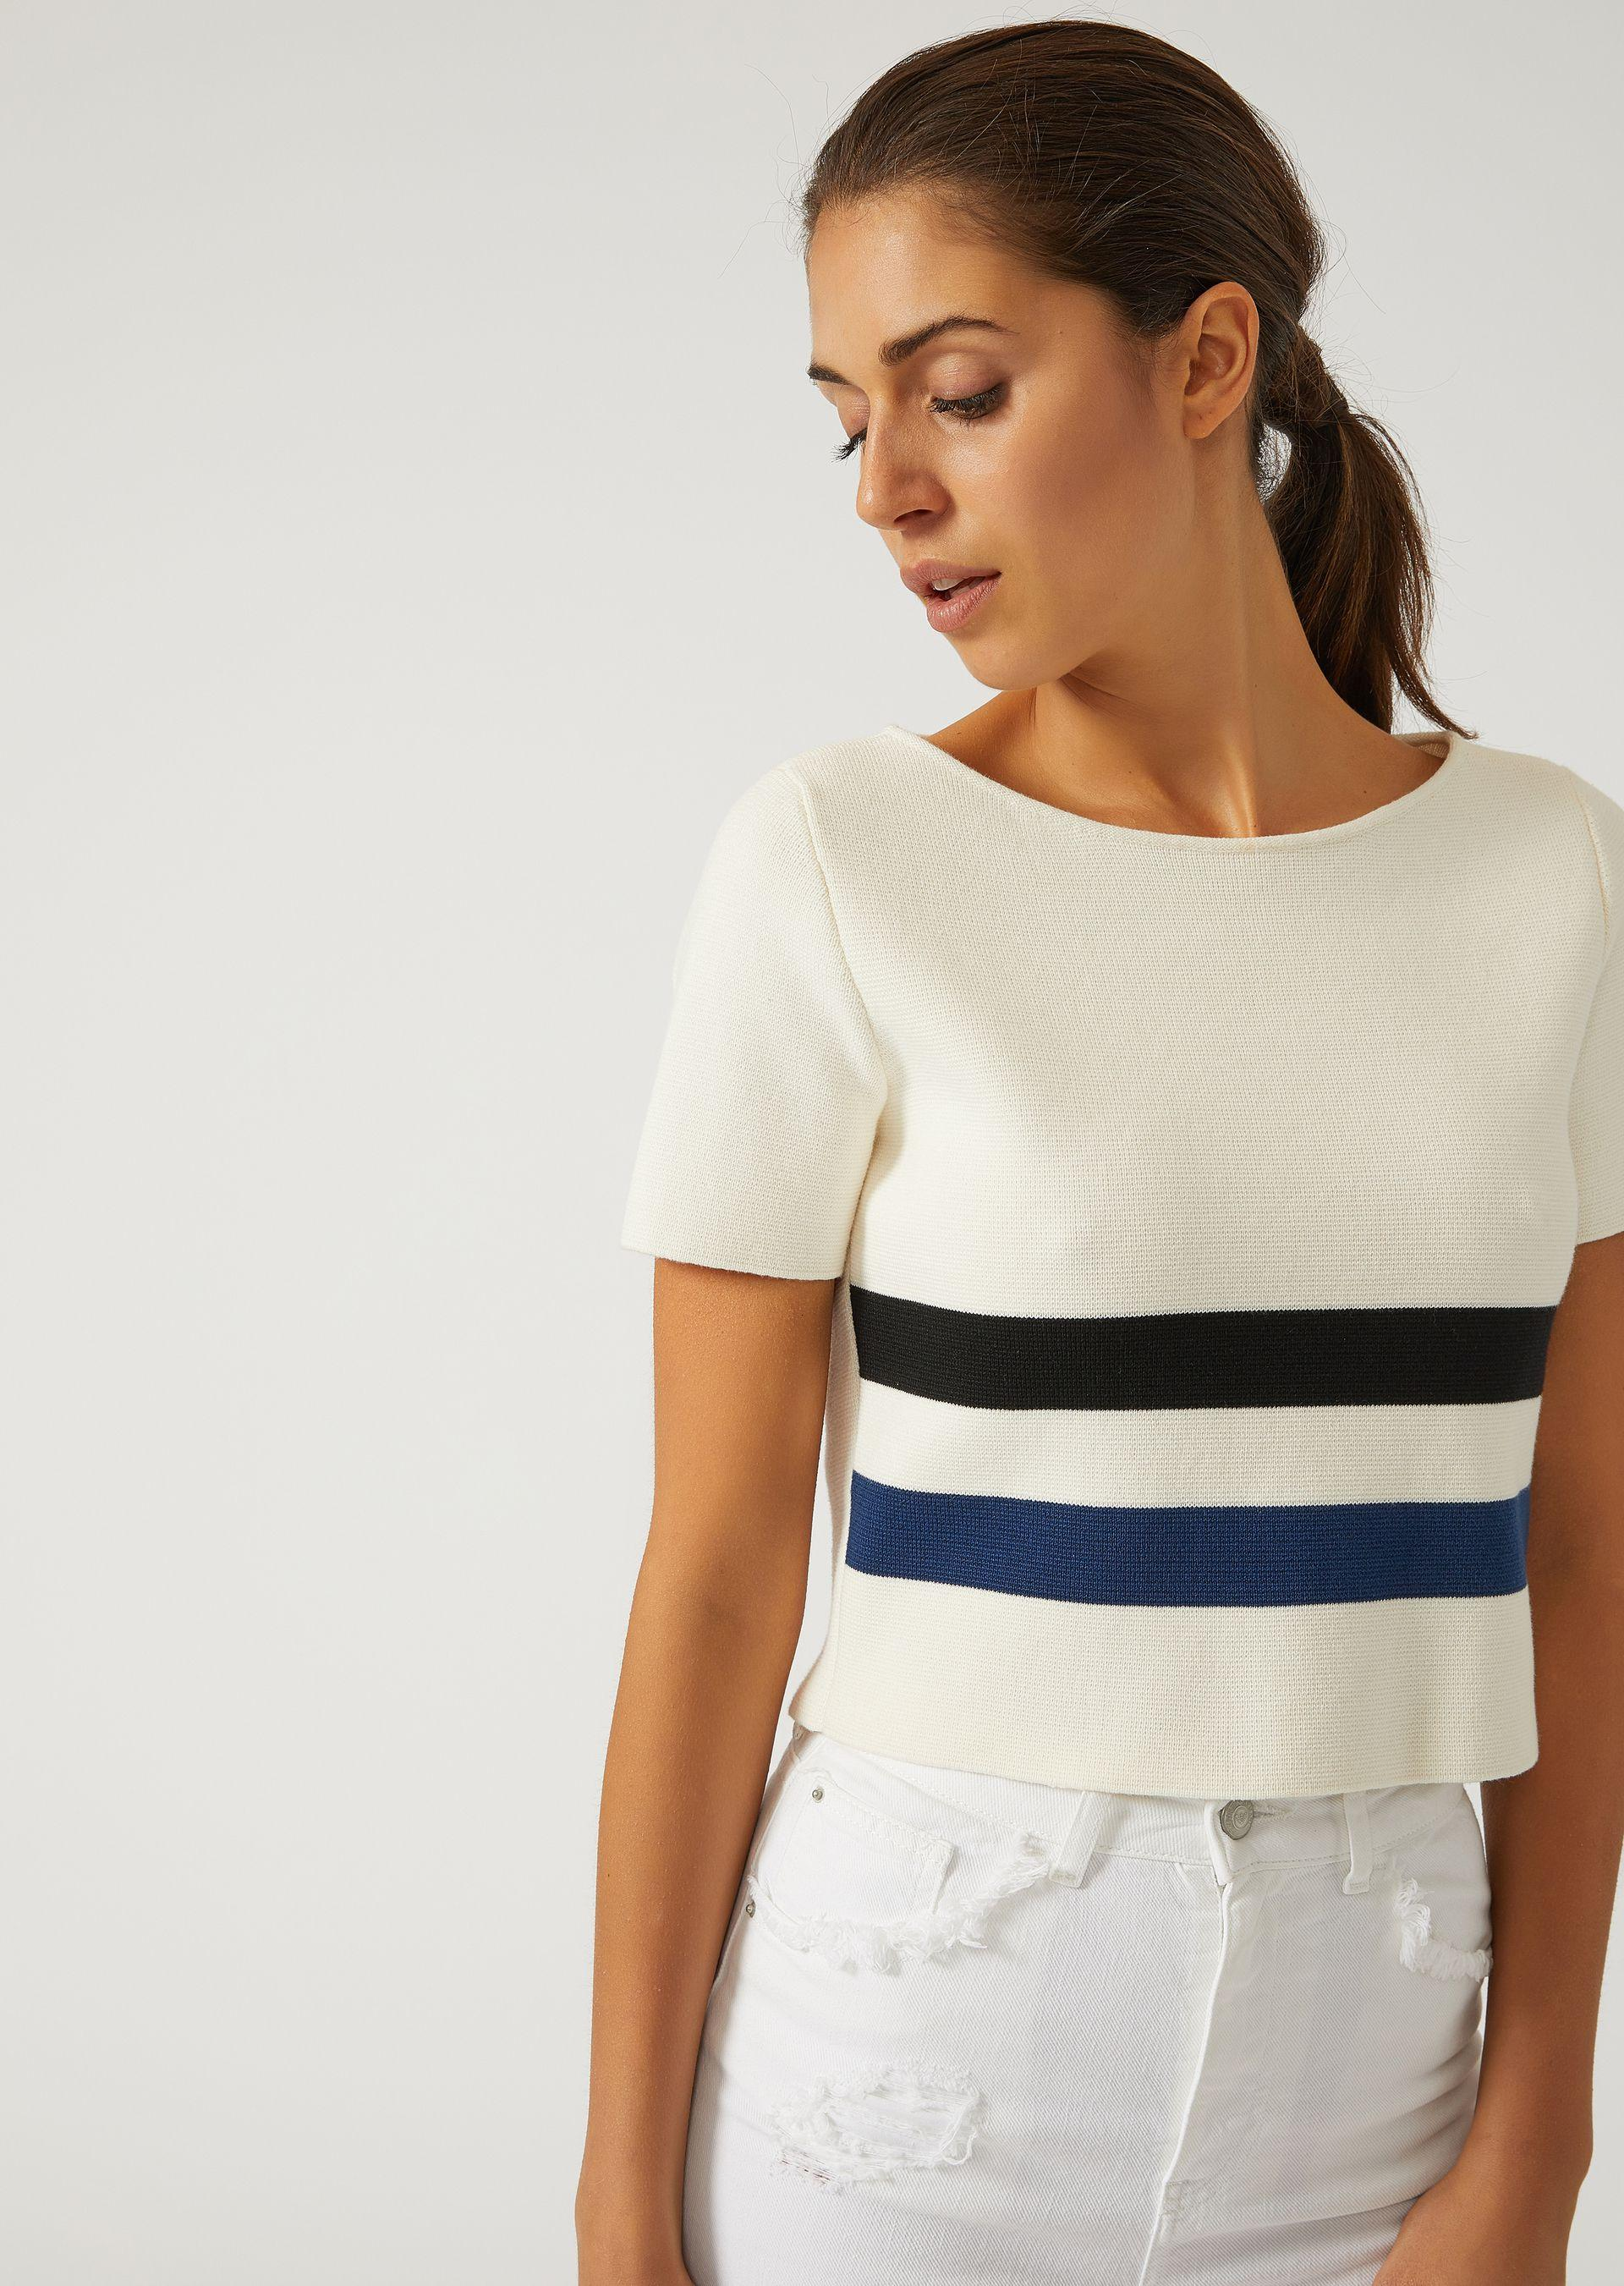 Emporio Armani Knitted Tops - Item 39850260 In Navy Blue ; Milky White